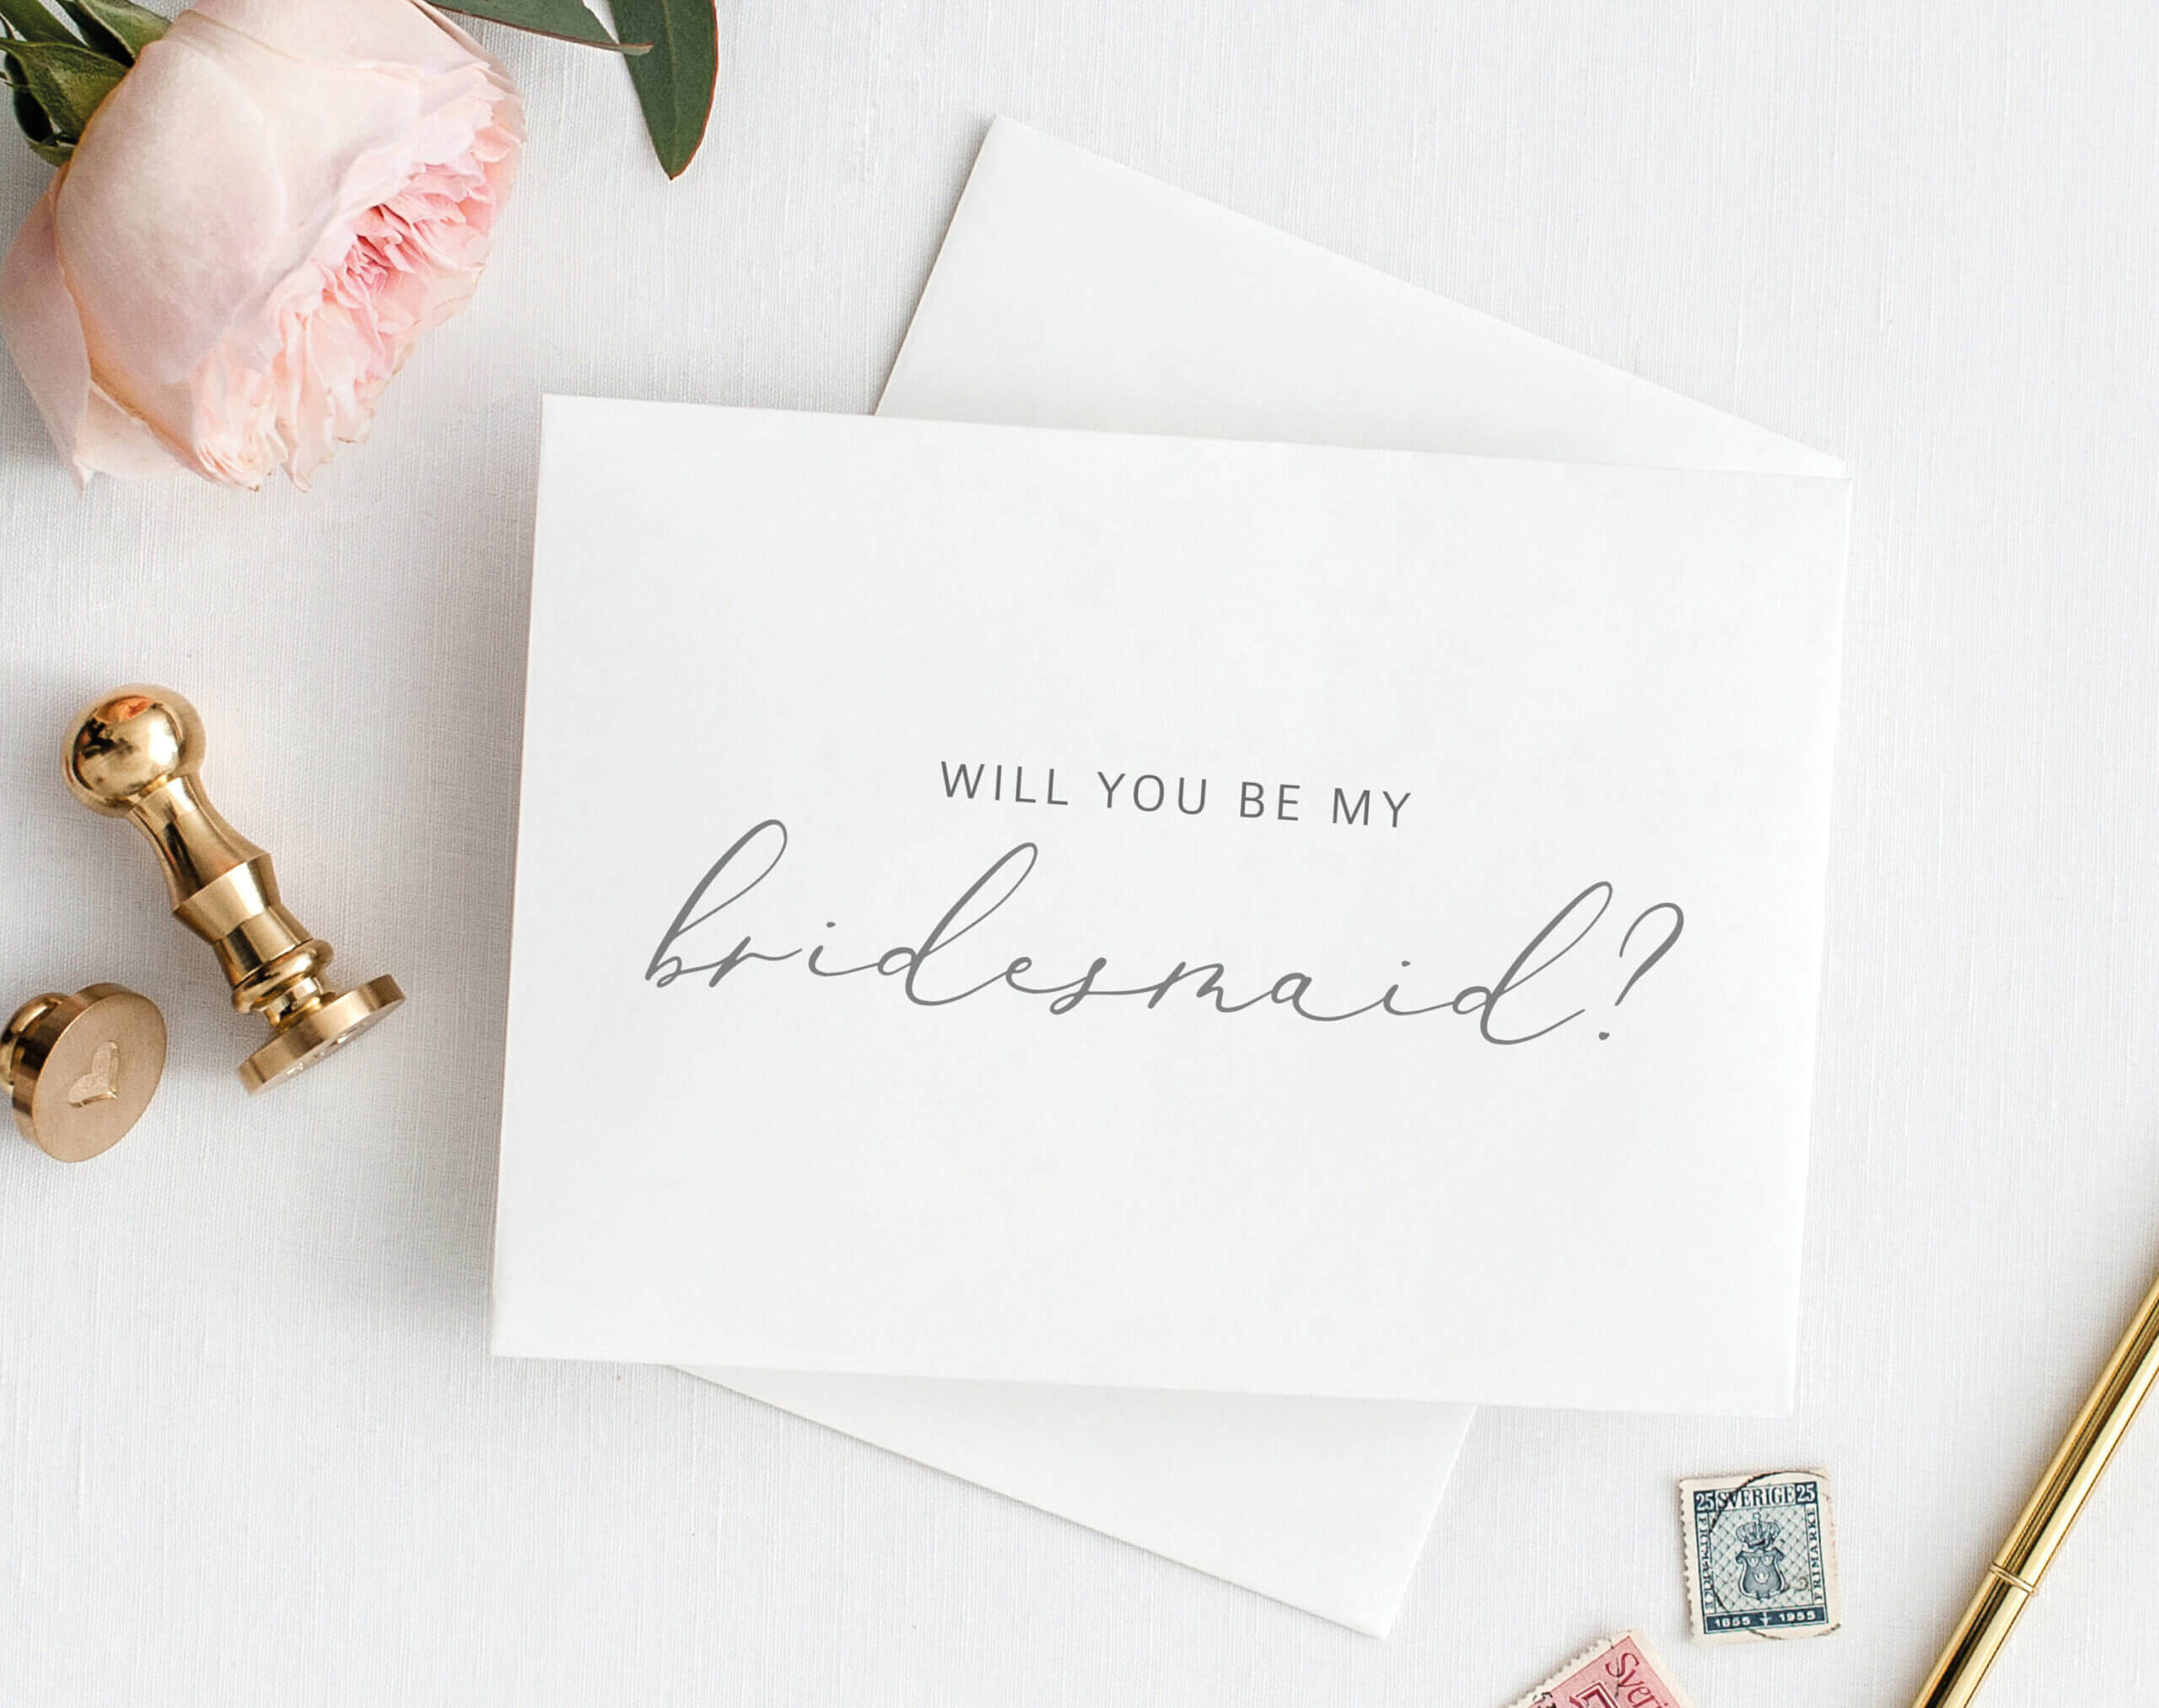 Will You Be My Bridesmaid Card, Printable Bridesmaid Card Inside Will You Be My Bridesmaid Card Template